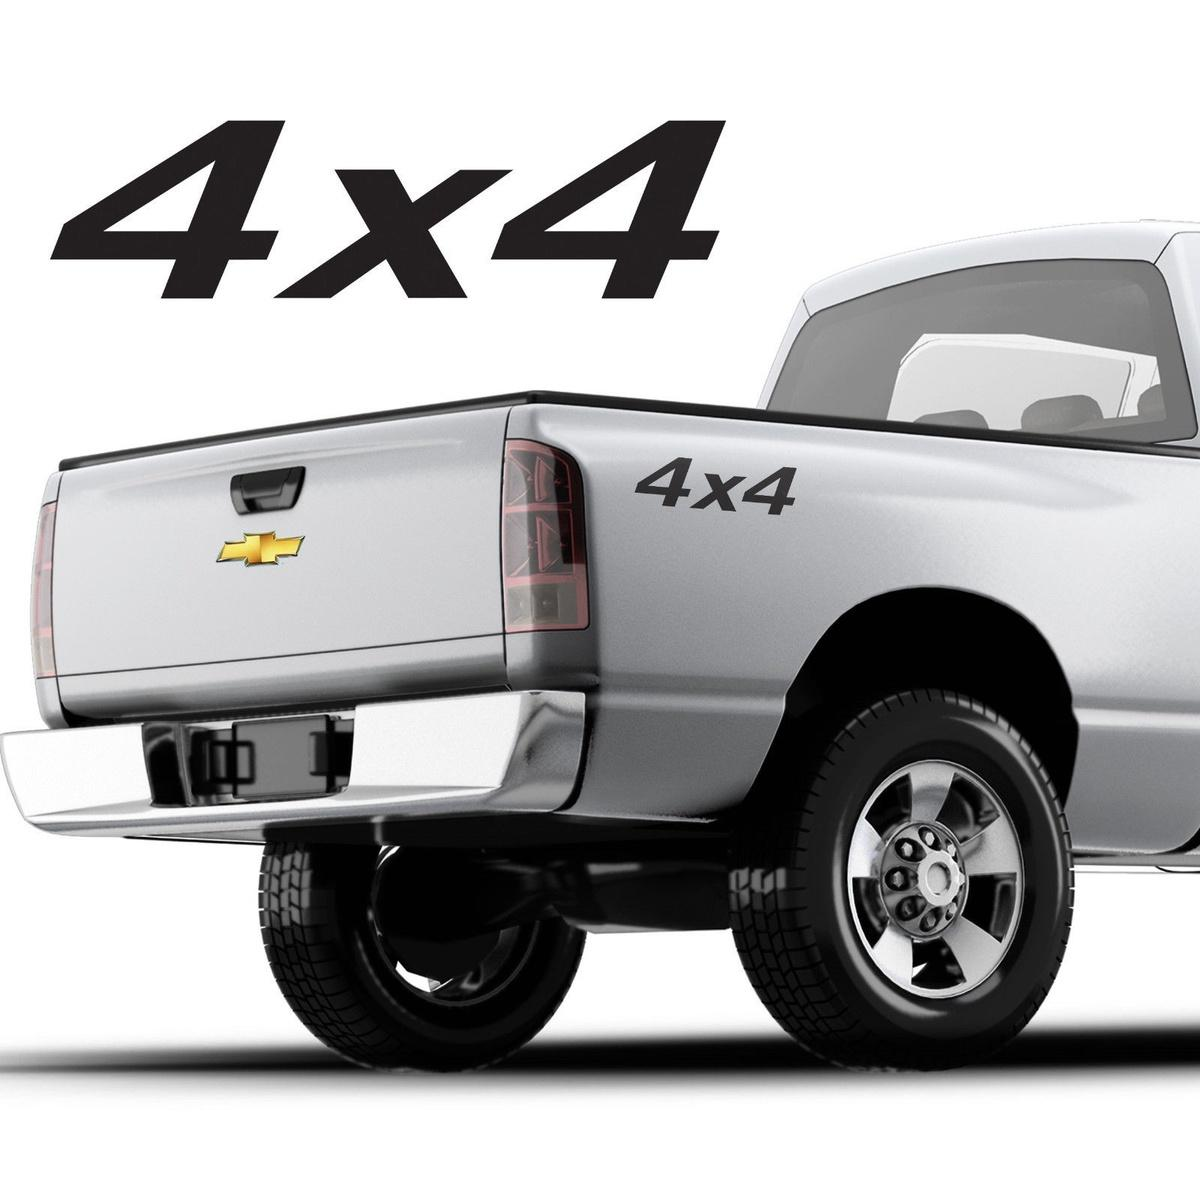 For (2Pcs)4x4 Truck Bed Decals, Simple design for any pickup truck SET OF 2 Chevy, F-150